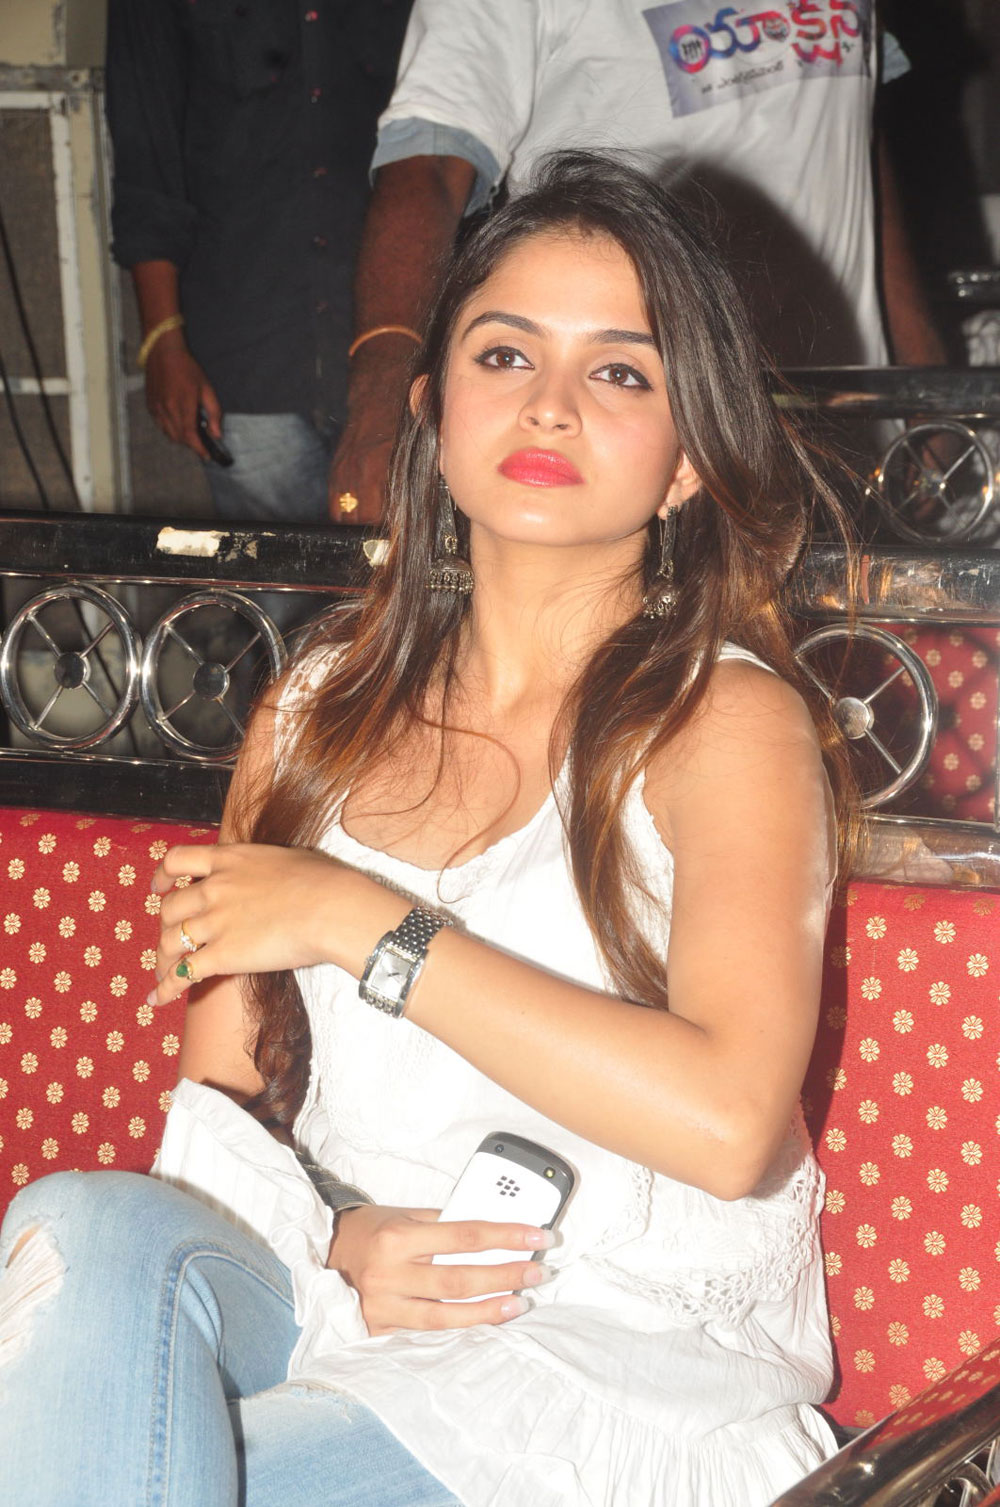 Confident hot sexy Sheena shahabadi photos at action 3d movie platinum disk event